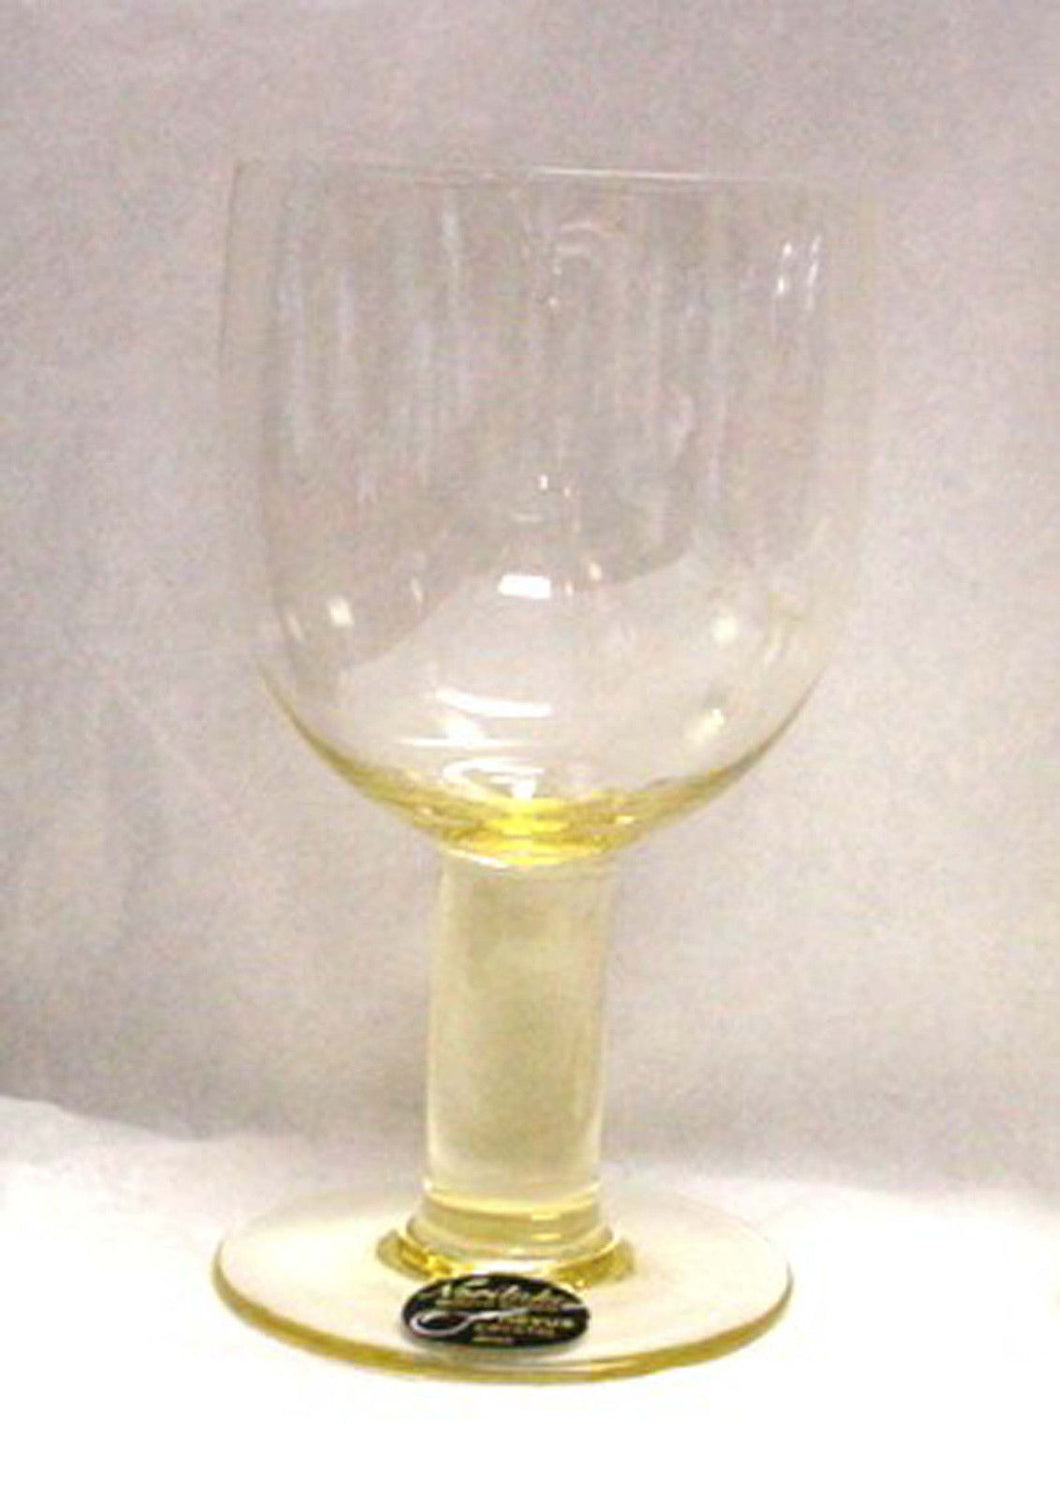 NORITAKE crystal NOVUS - CITRON pattern WINE Glass